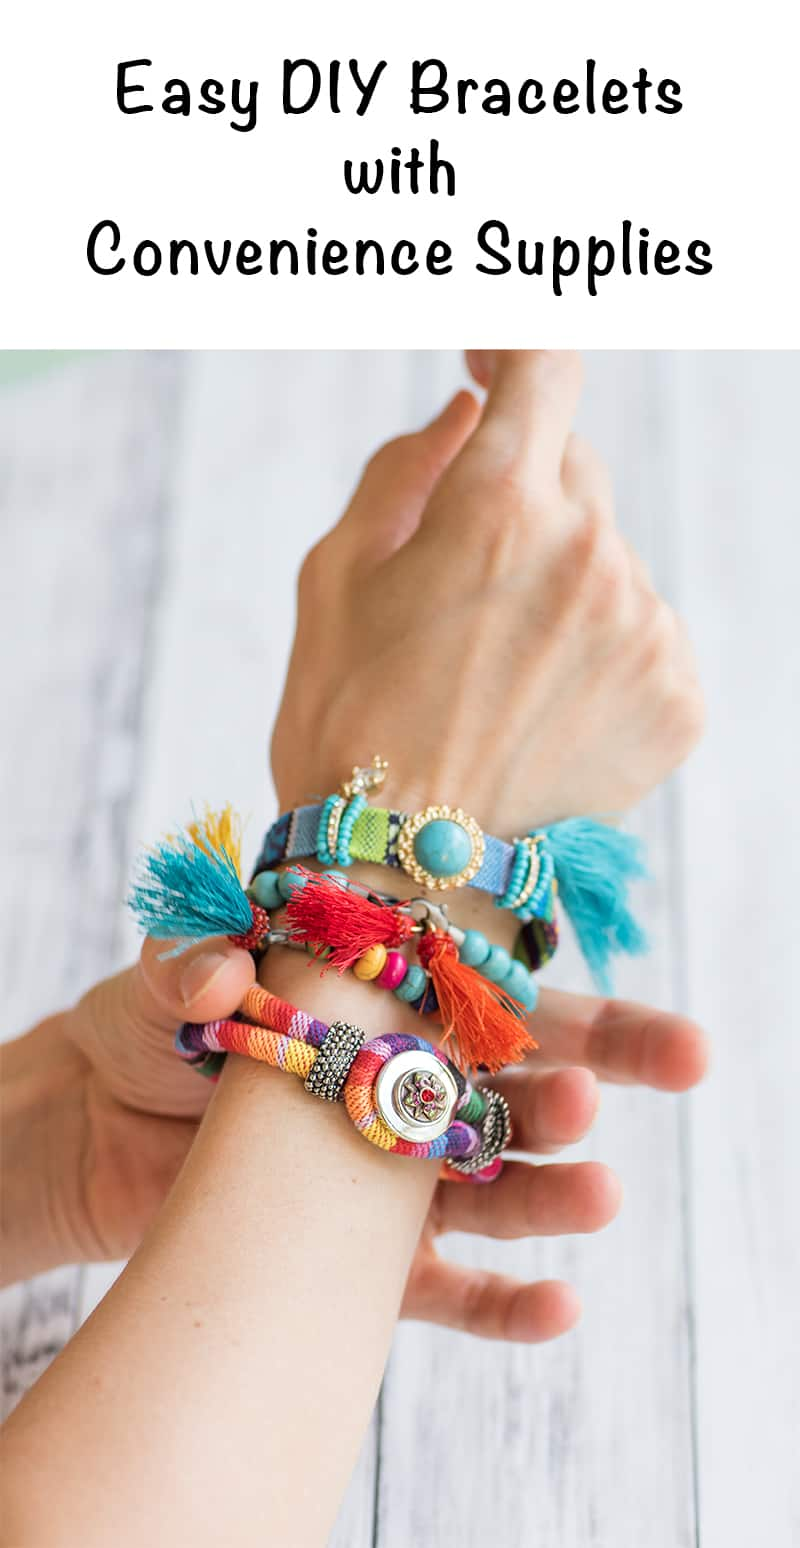 Easy DIY Bracelets with Convenience Supplies - tips for making convenience supplies work for you